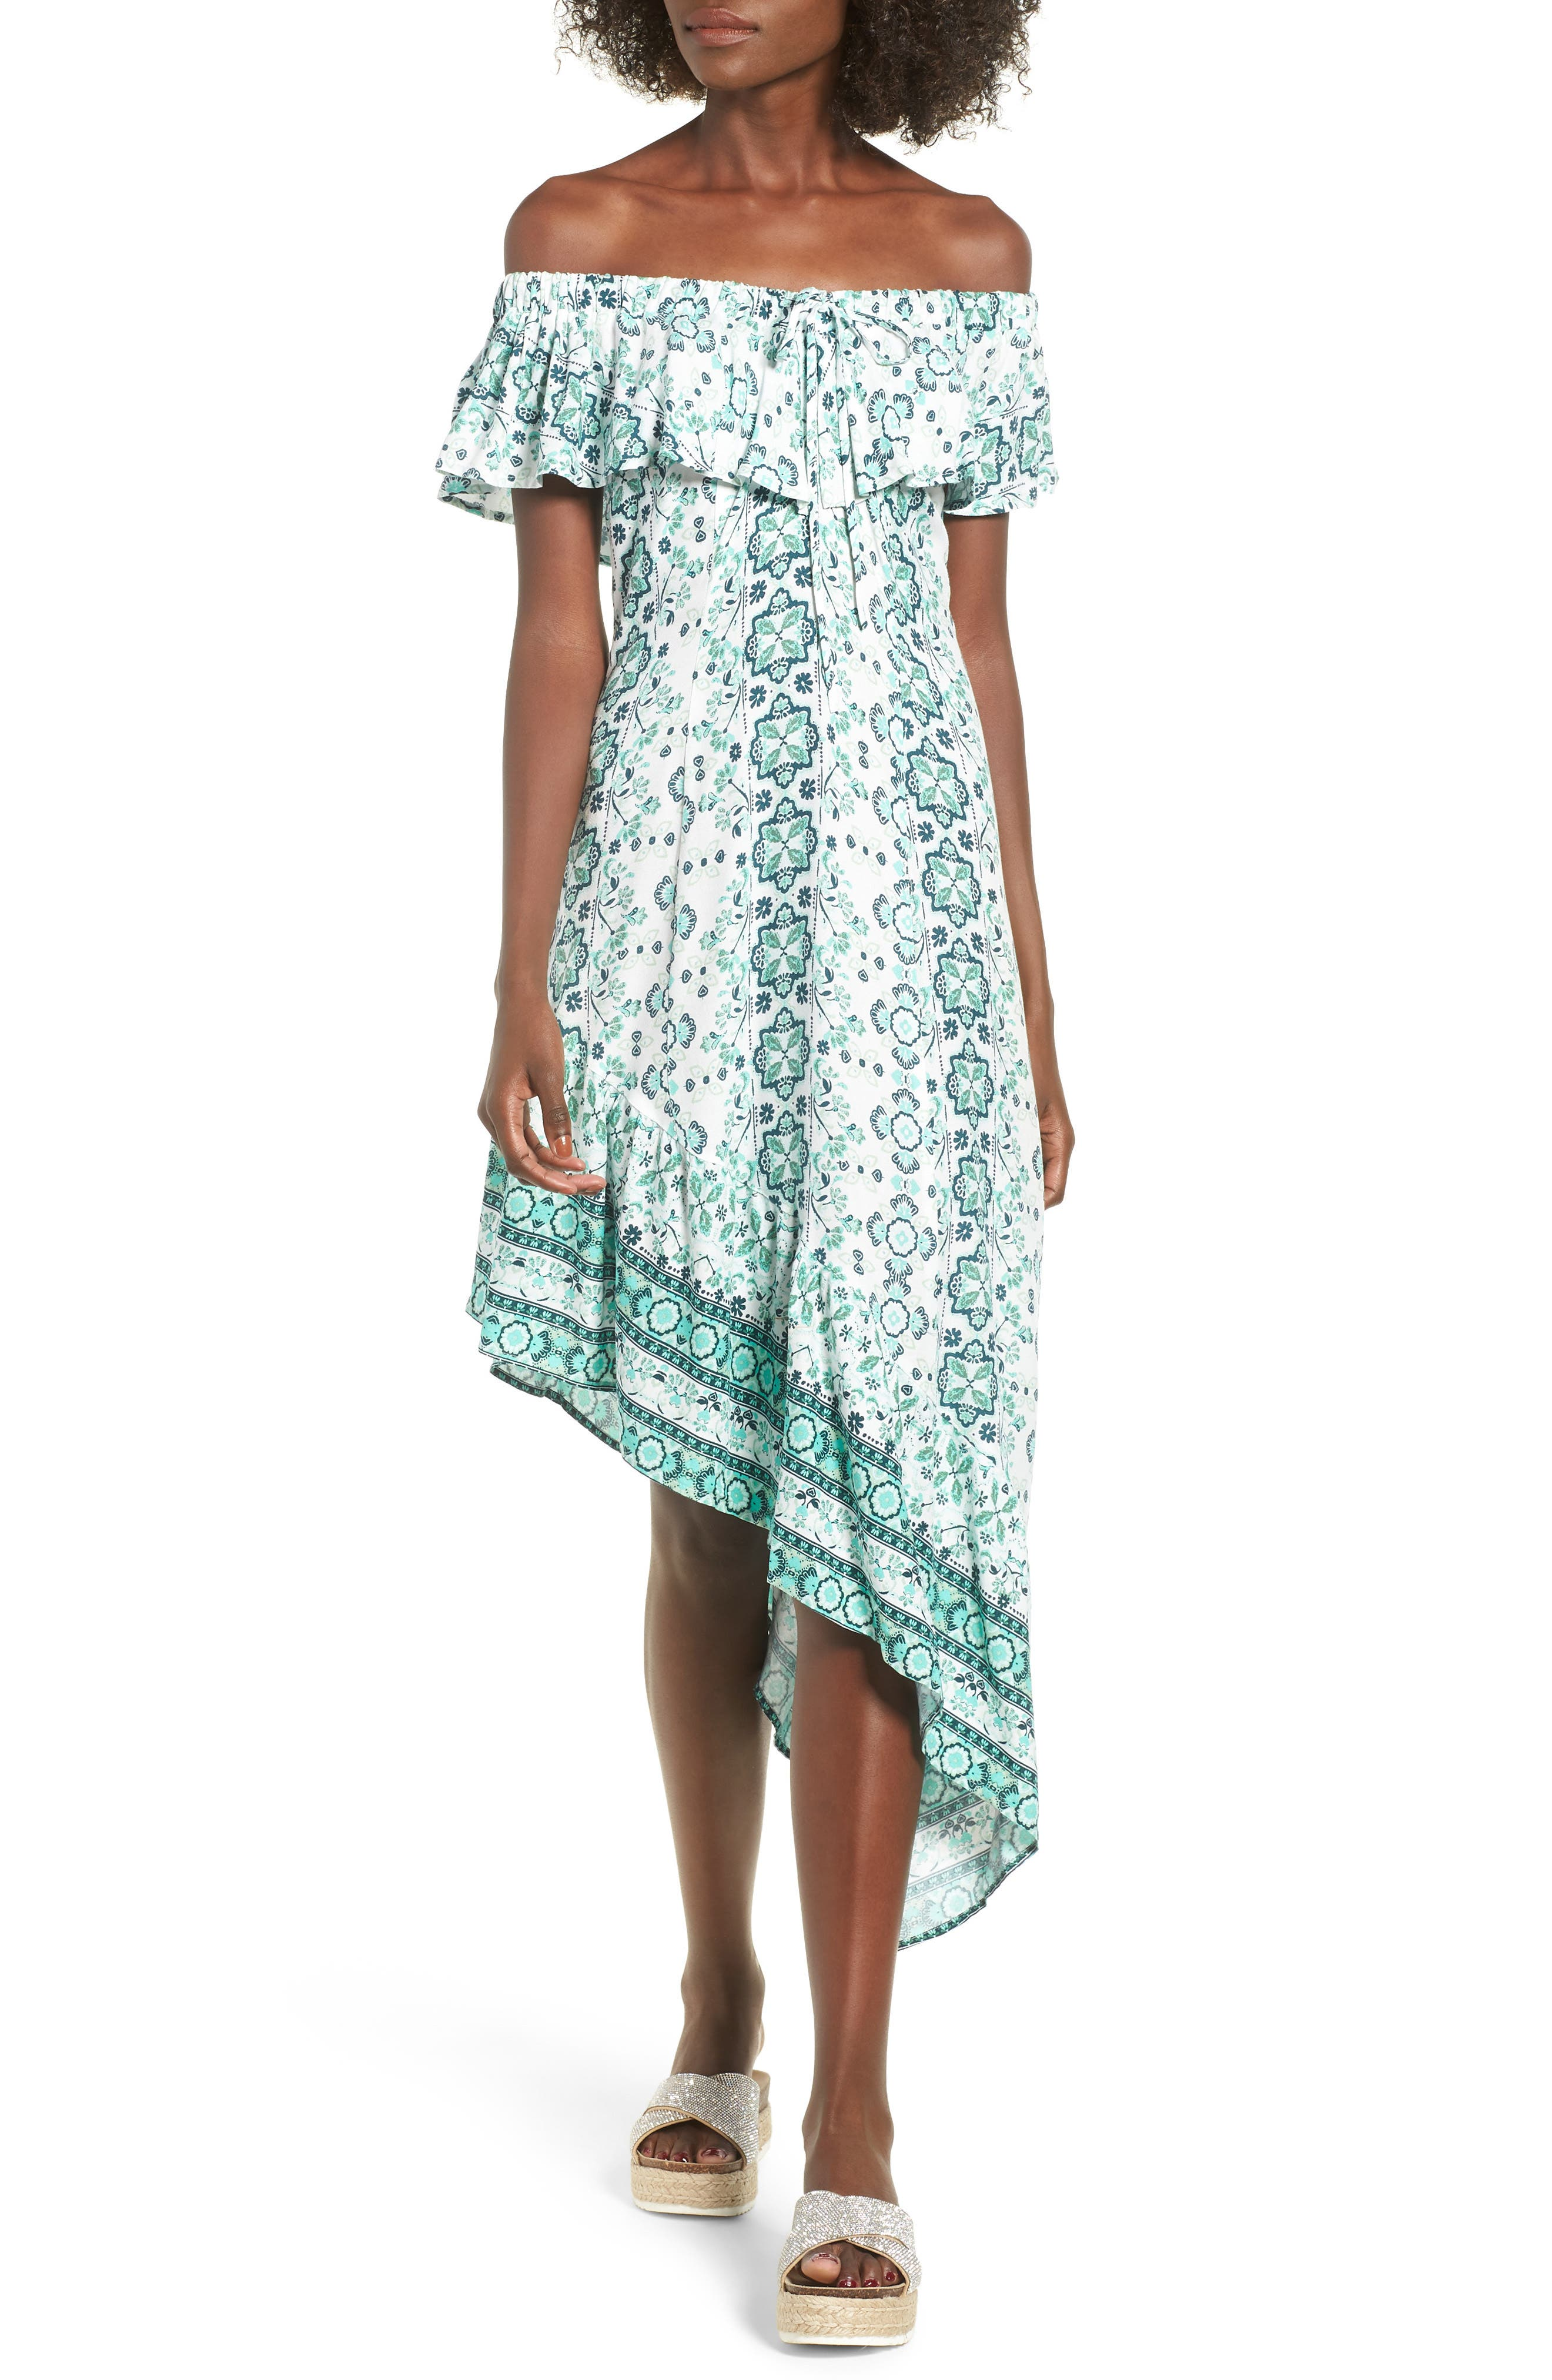 Coastal Mountains Off the Shoulder Asymmetrical Dress,                         Main,                         color, Multi